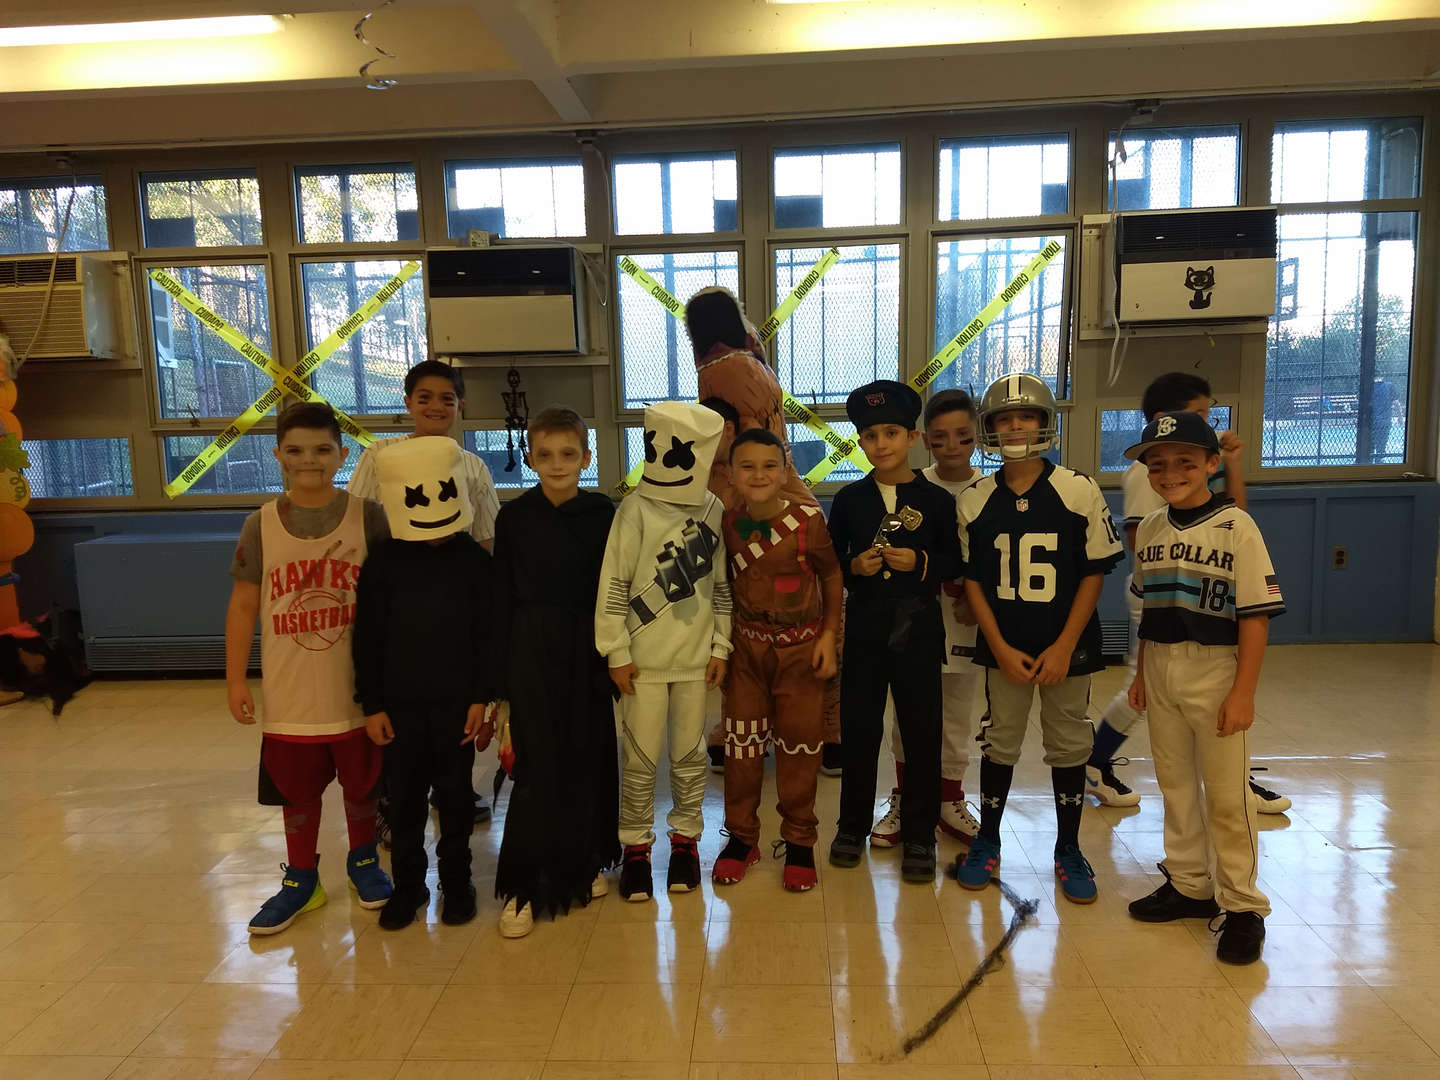 a large group of costumed children